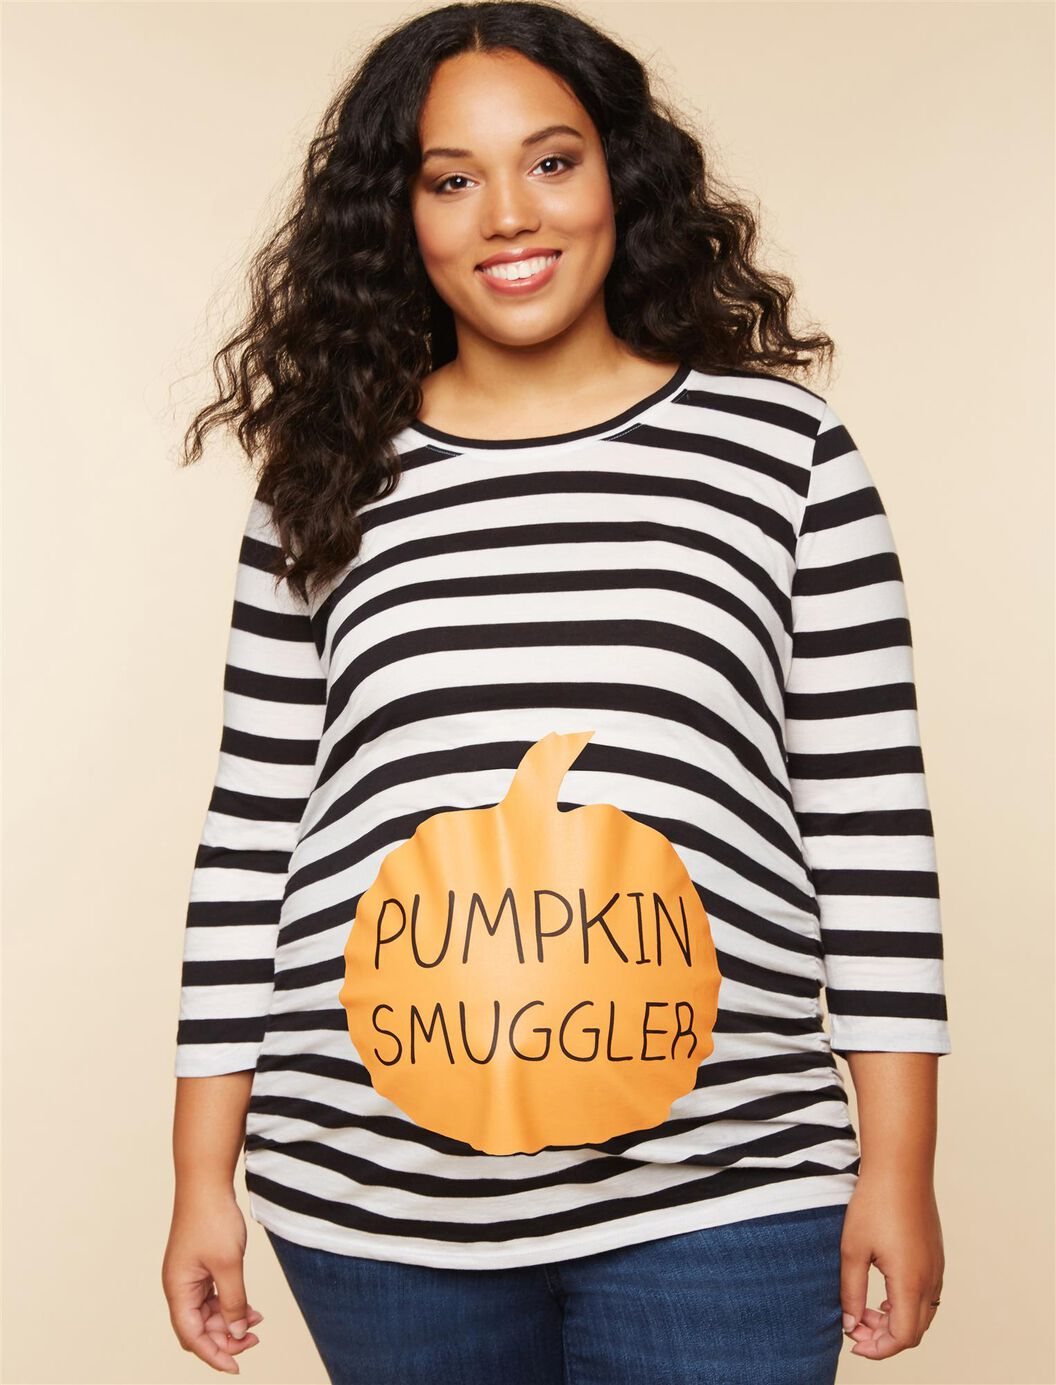 Plus Size Pumpkin Smuggler Maternity Tee at Motherhood Maternity in Victor, NY | Tuggl